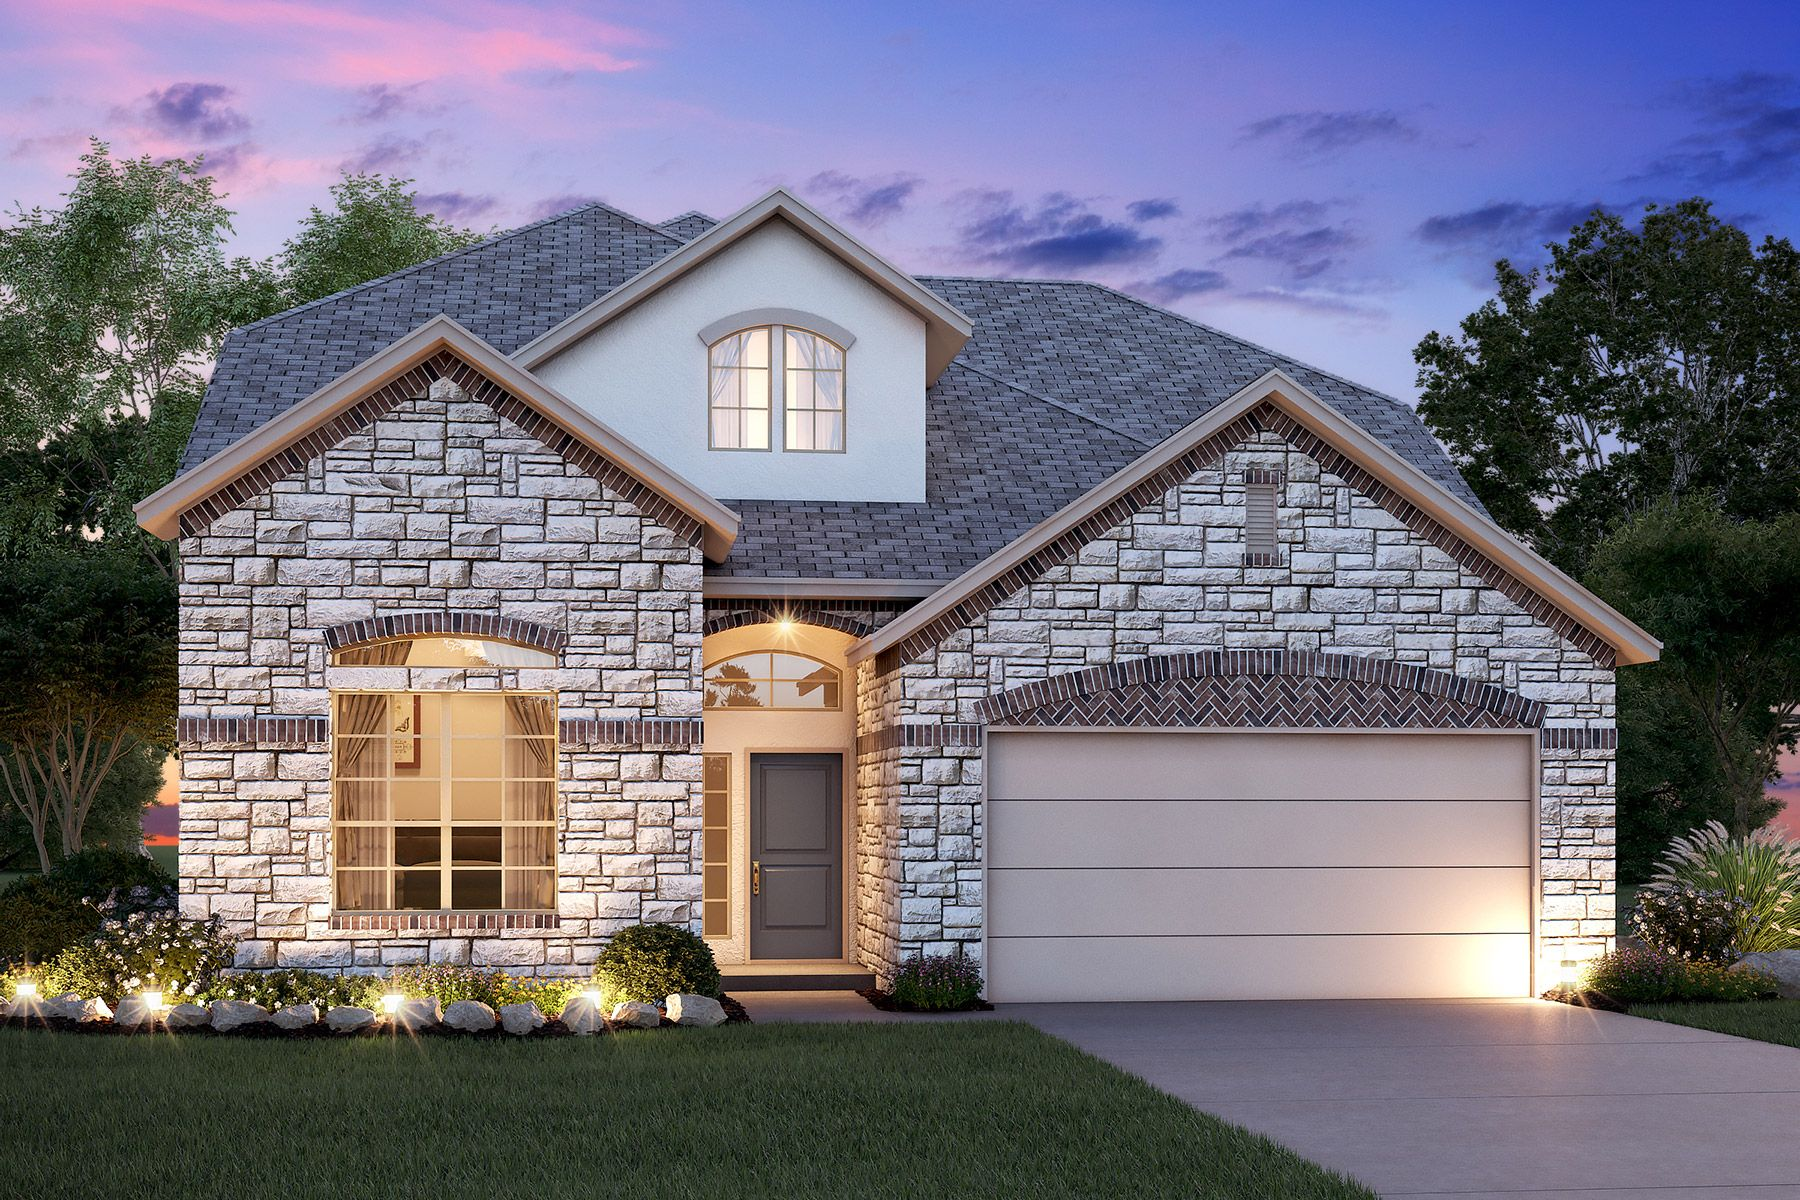 Single Family for Sale at Trails At Helotes - Rosewood 10513 Far Reaches Lane Helotes, Texas 78023 United States